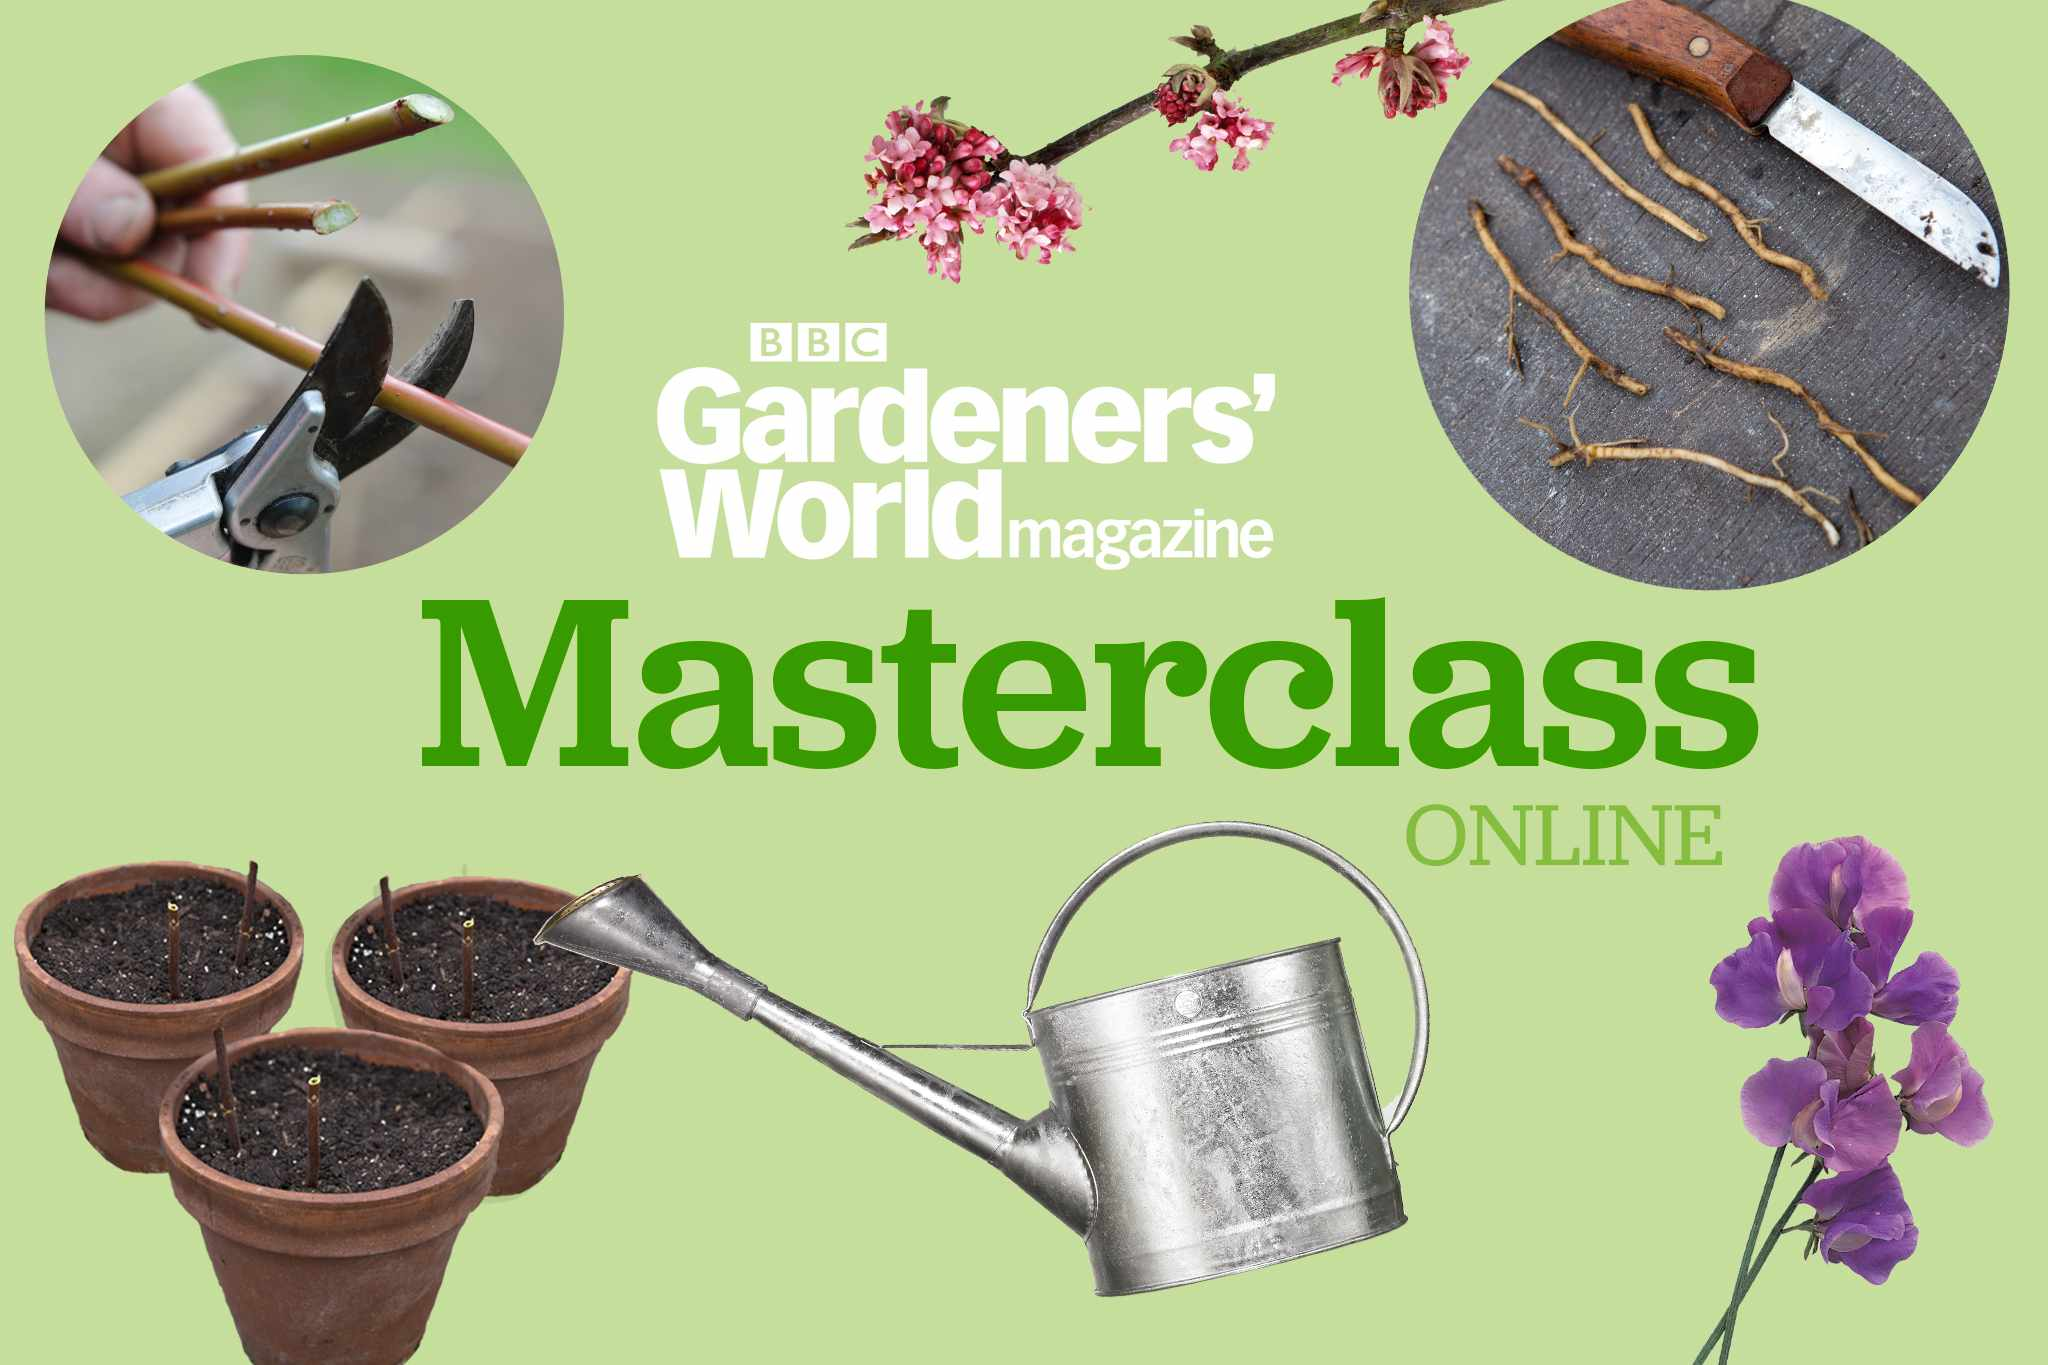 Success with Propagation: Easily Grow Free Plants - Masterclass online from BBC Gardeners' World Magazine